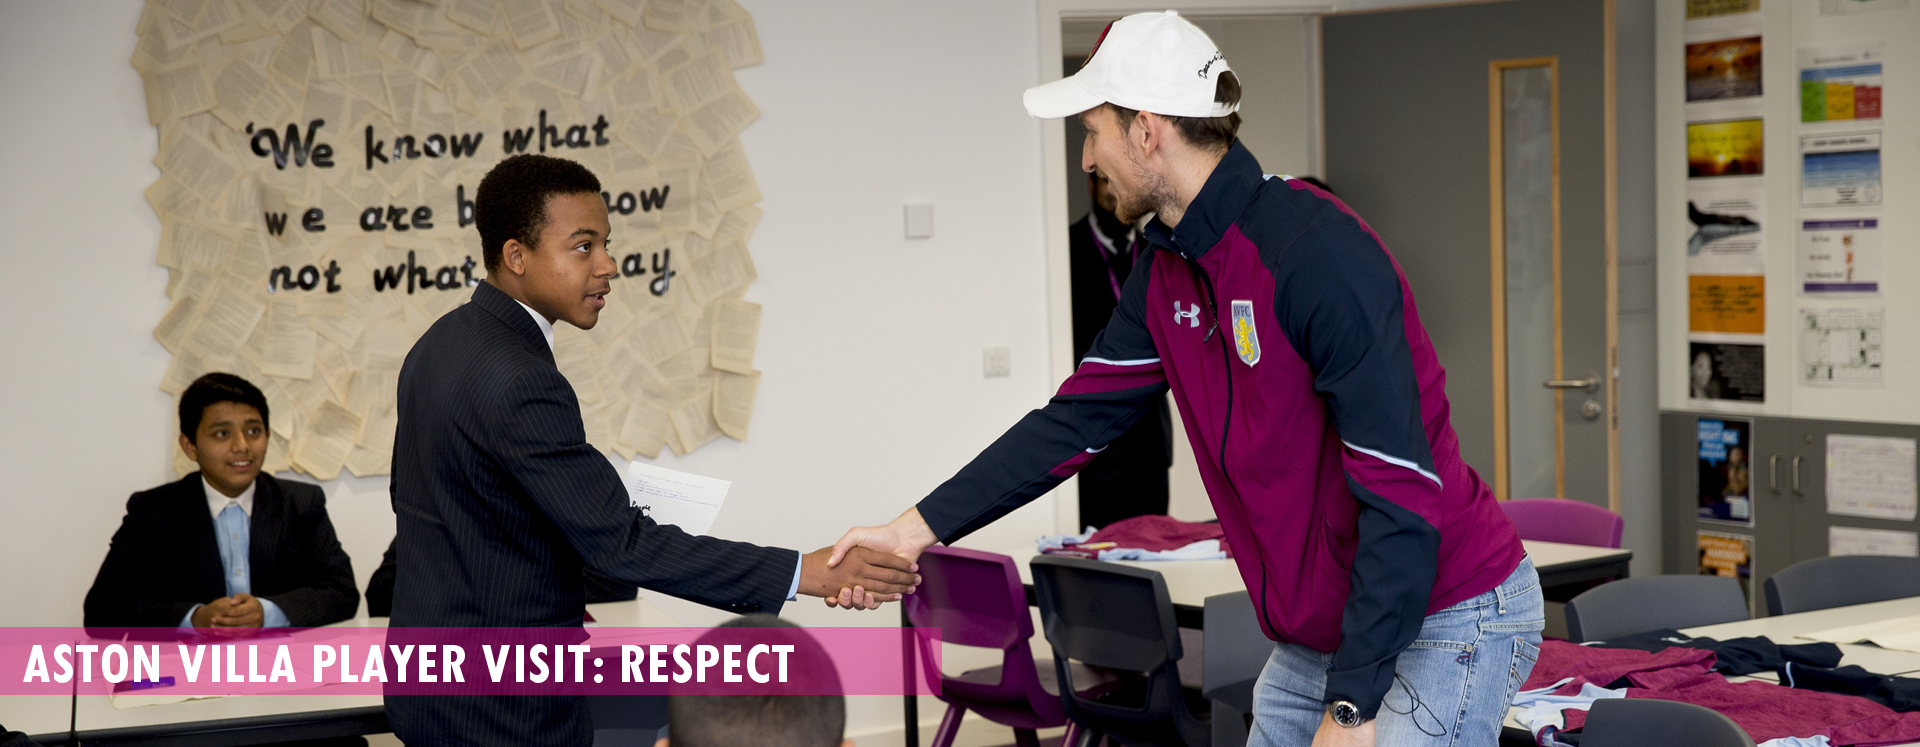 Aston Villa Player visit